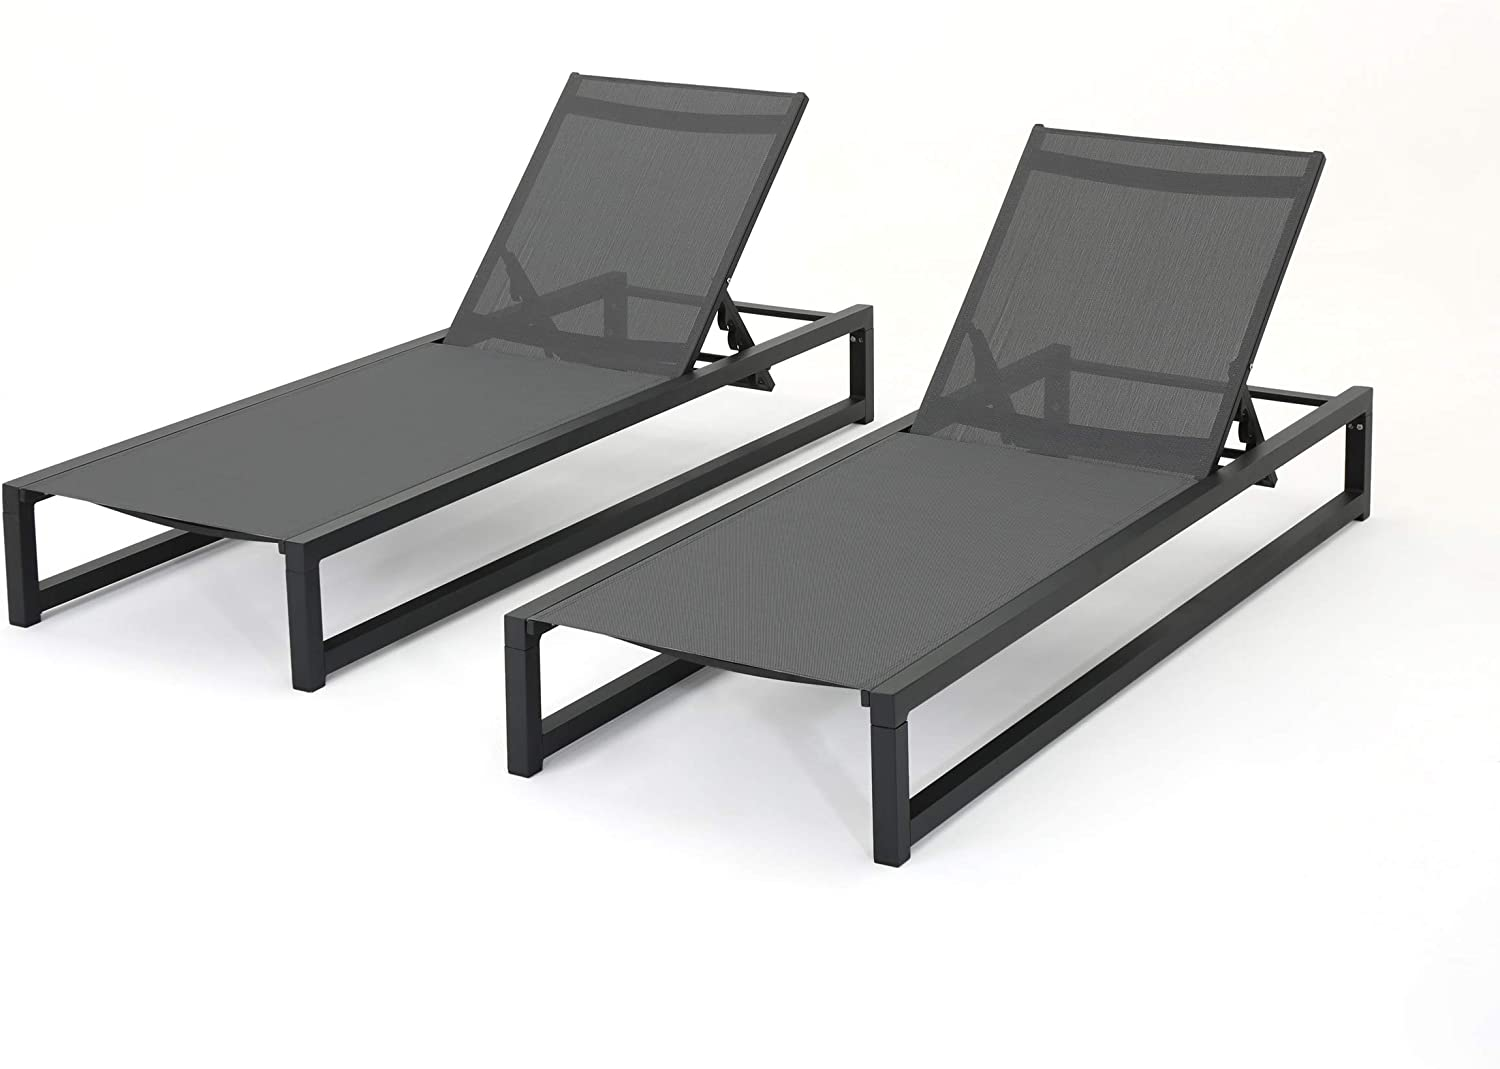 Christopher Knight Home Louisville-Jefferson County Outstanding Mall Modesta Outdoor Framed Chaise L Aluminum